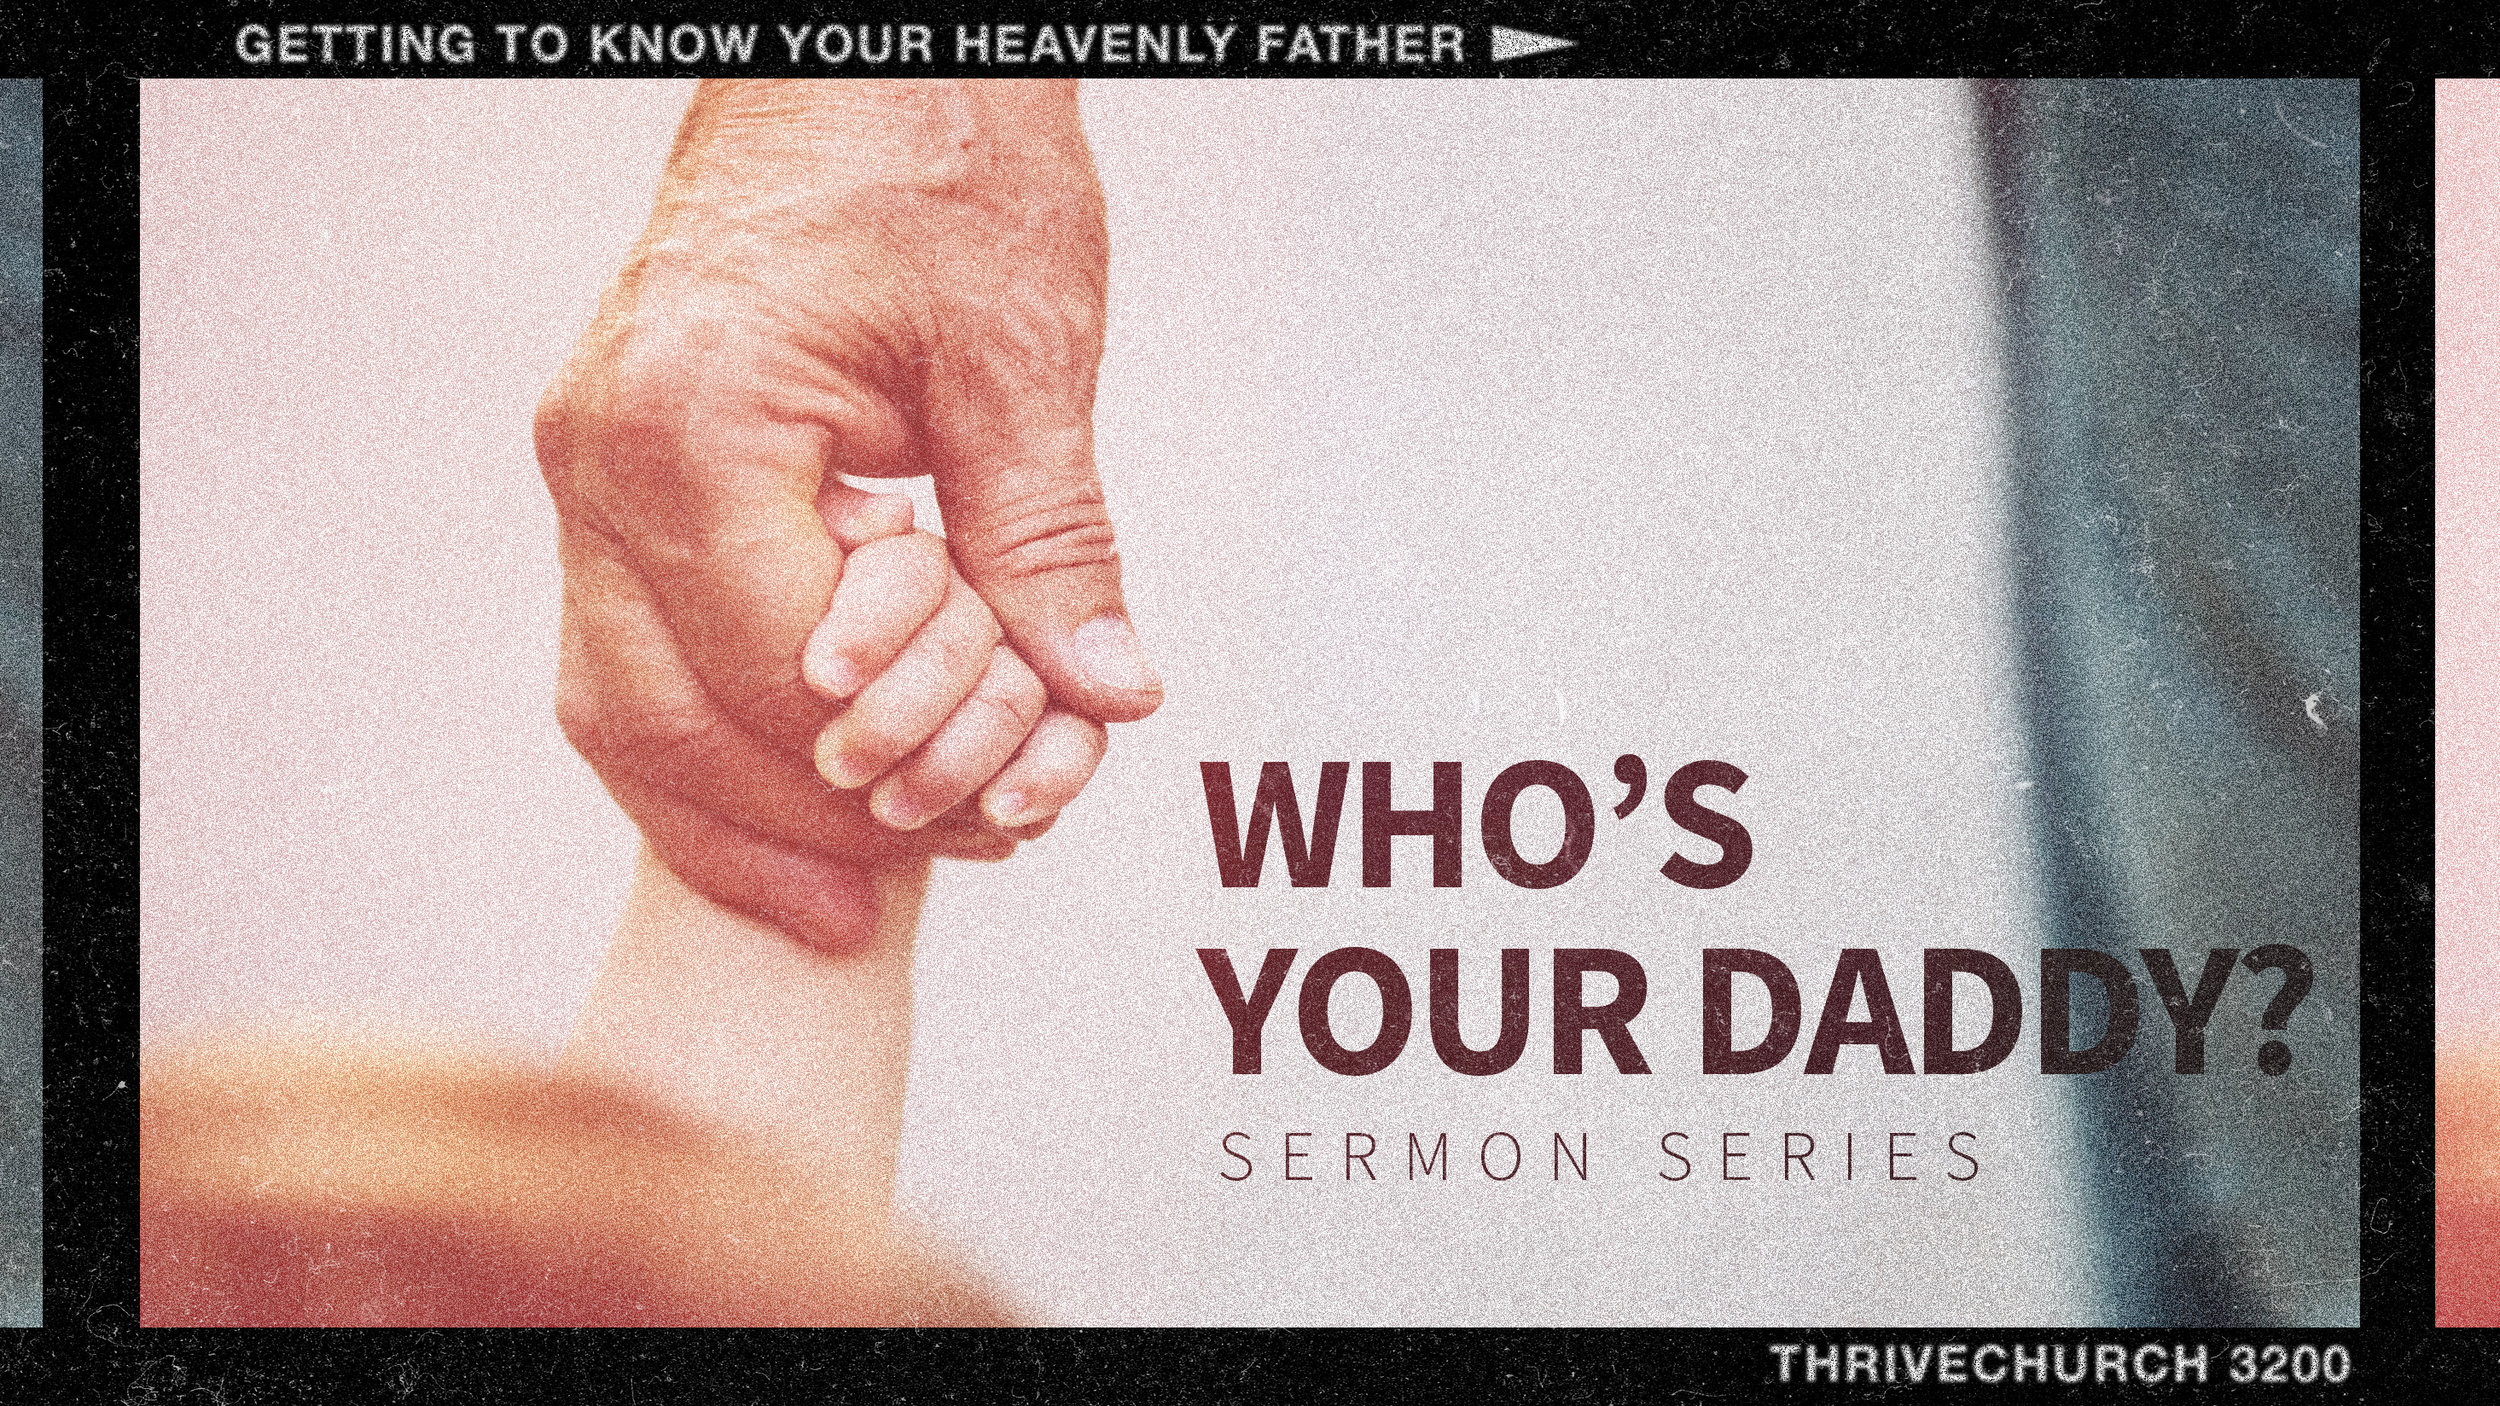 Who's Your Daddy Sermon Serires